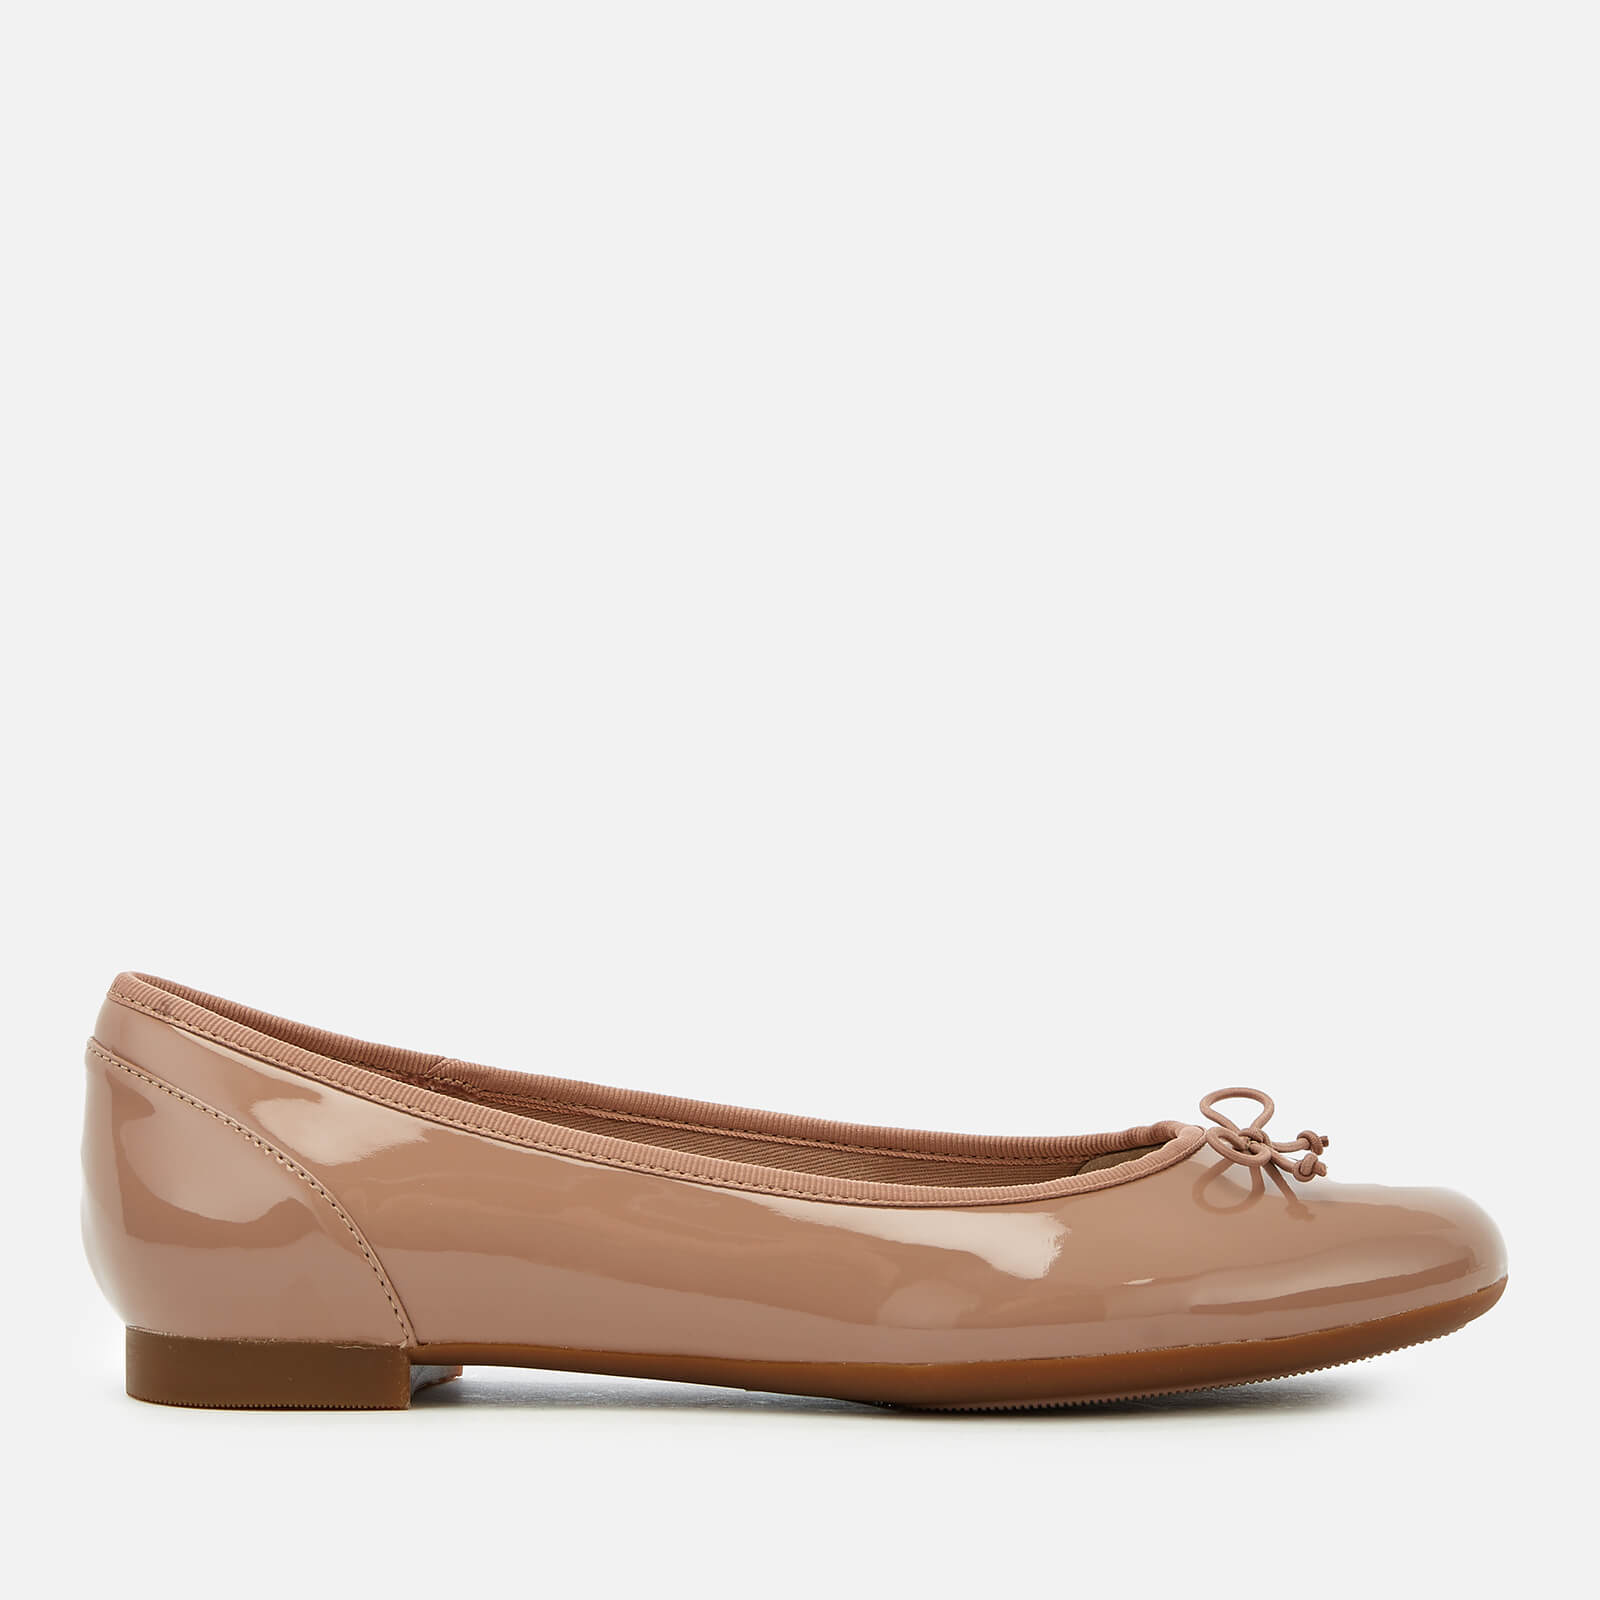 89b1ac3a9bbc5 Clarks Women's Couture Bloom Patent Leather Ballet Pumps - Nude Womens  Footwear   TheHut.com